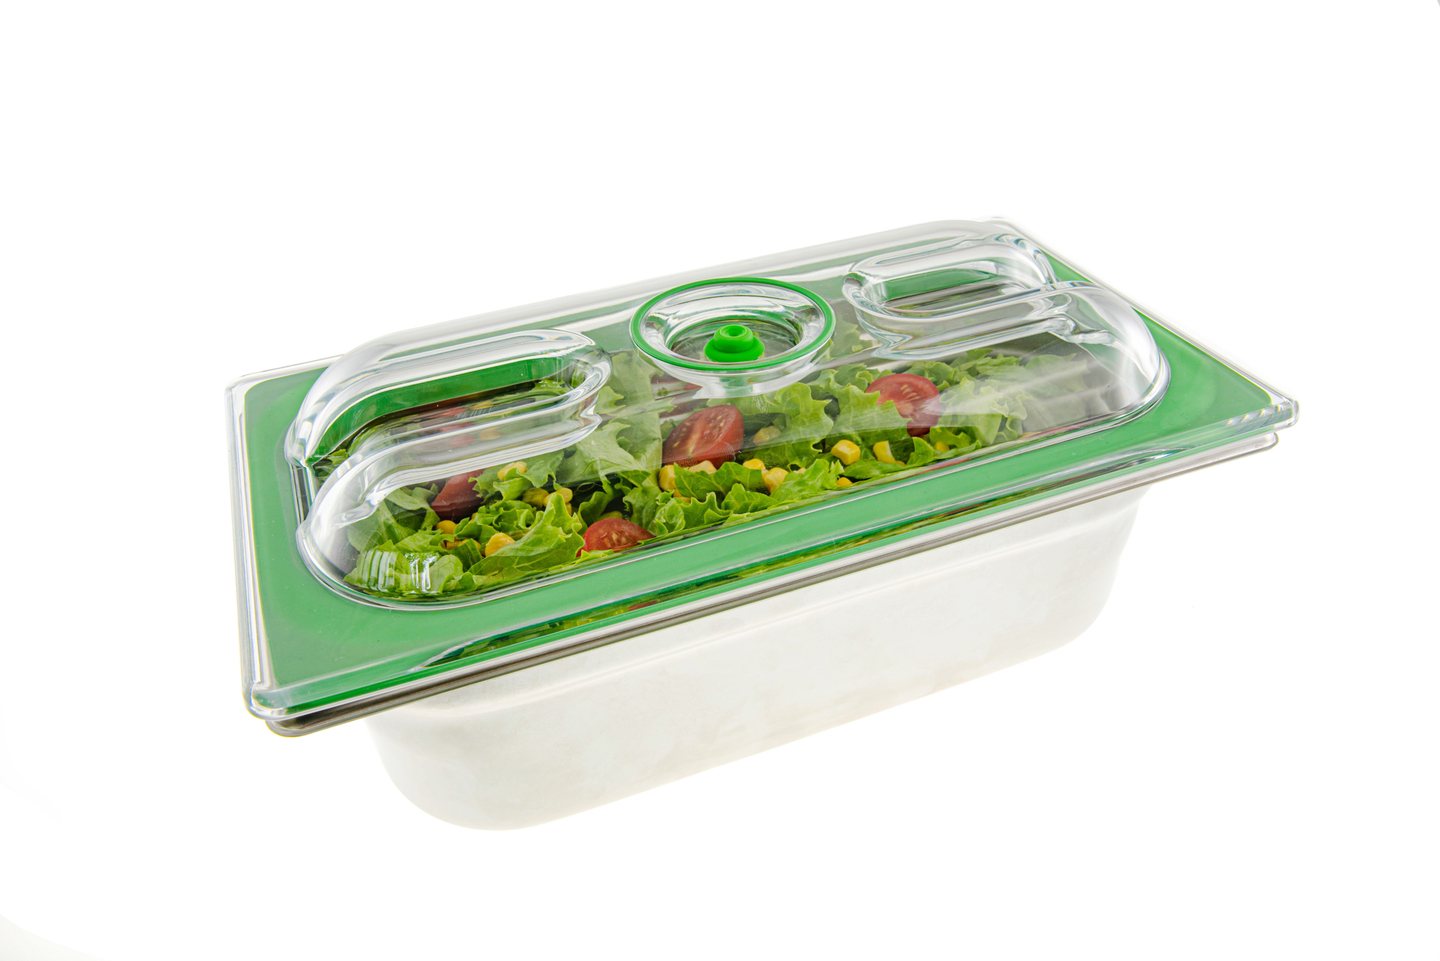 GN Couvercle pour gastronormbehälter New Model Polypropylène GN 1//1 Transparent